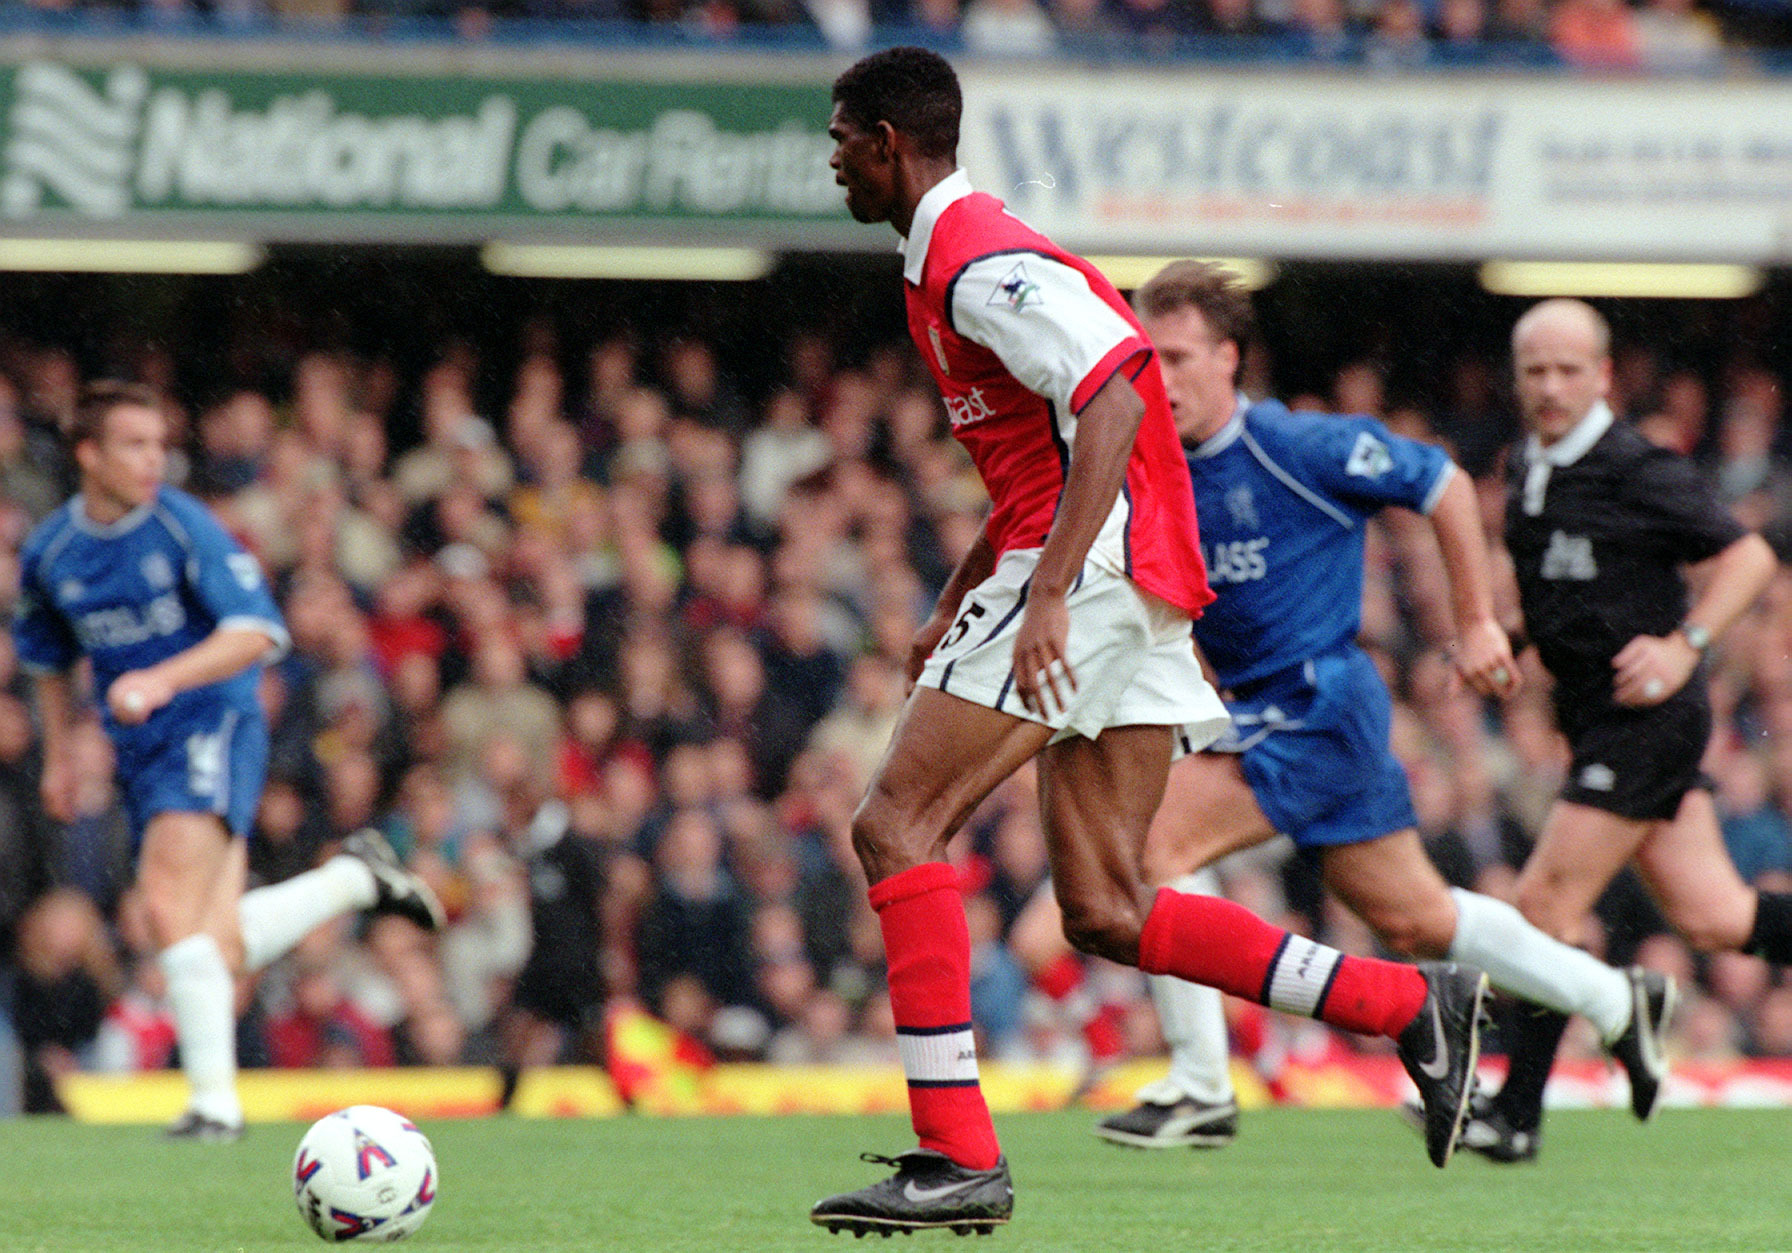 Kanu scored a 15-minute hat-trick as Arsenal came from two goals down to win 3-2 at Stamford Bridge in October 1999.